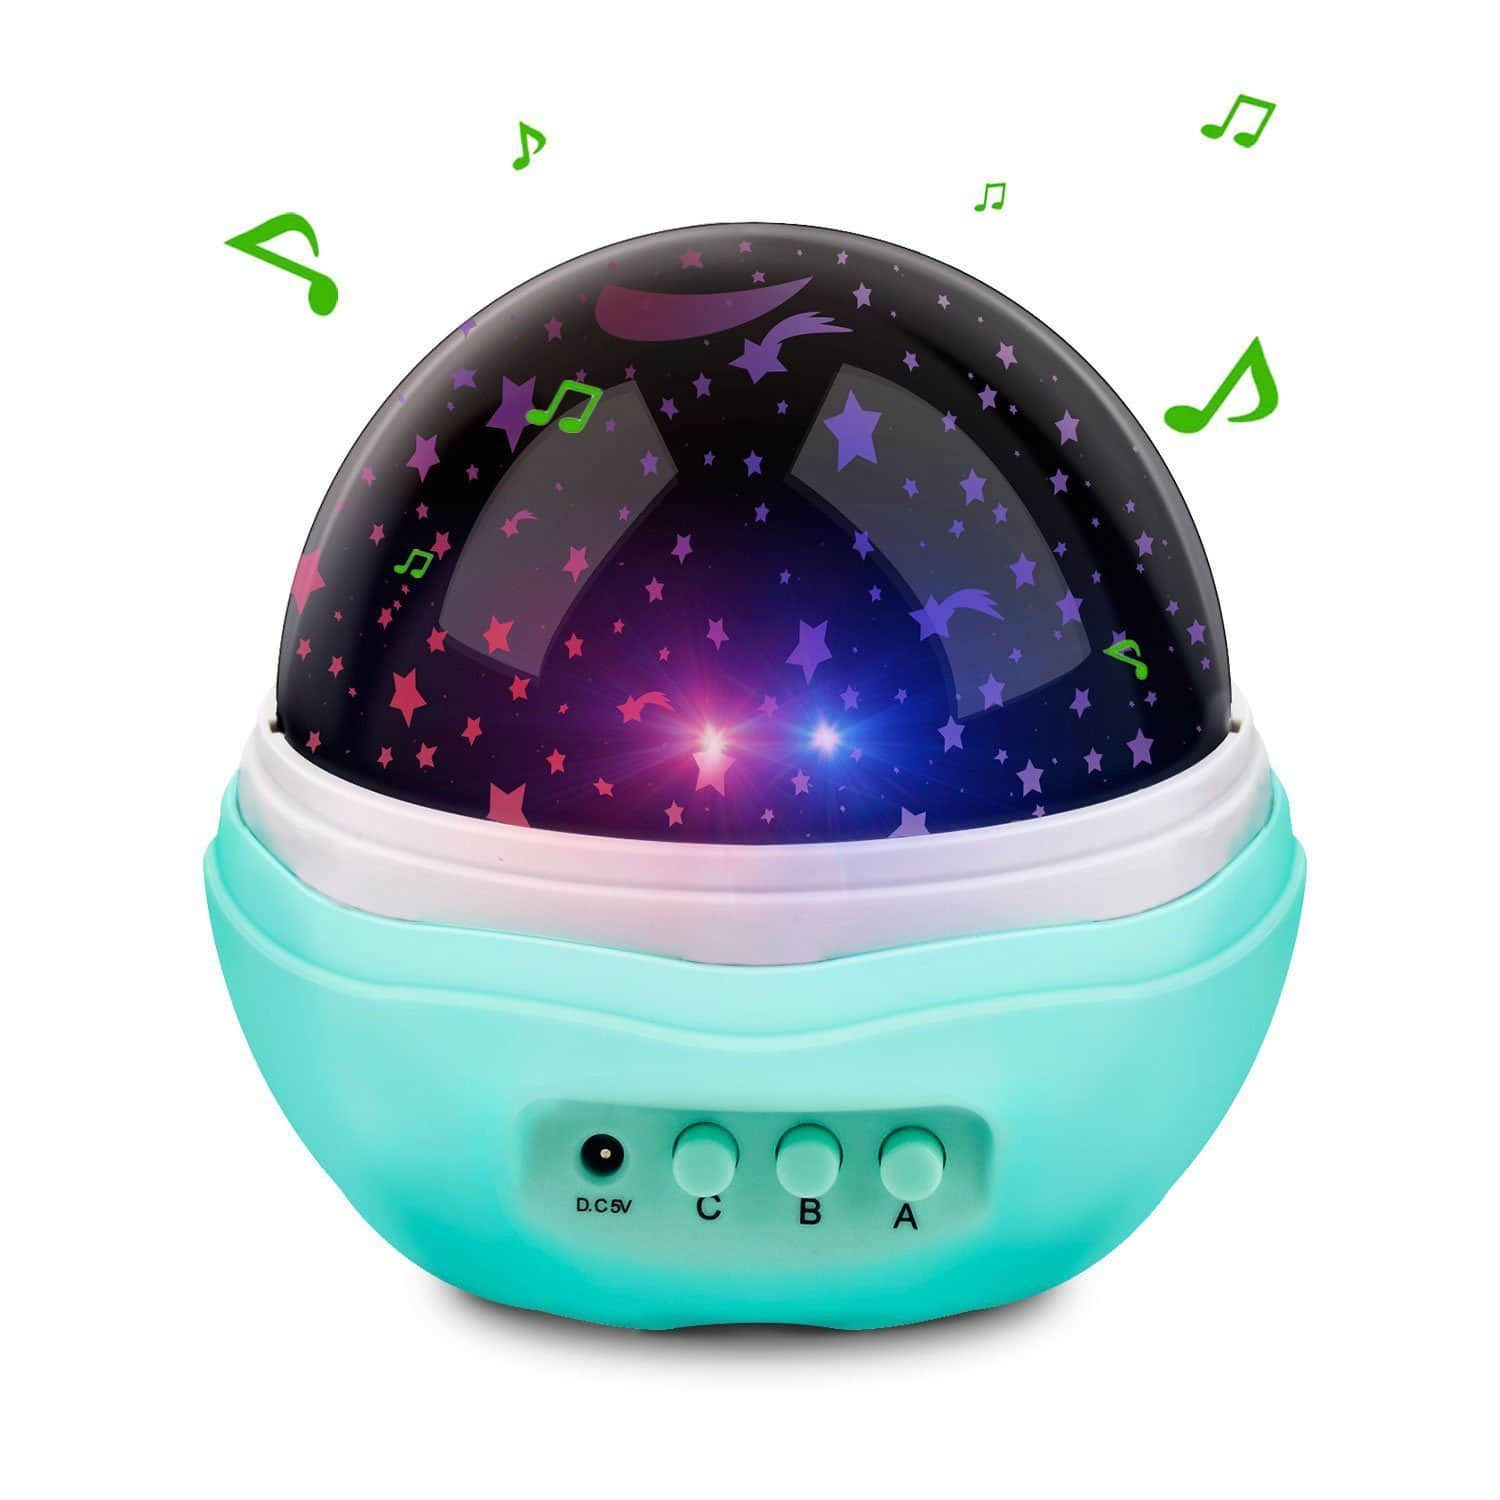 60% OFF - Rotating Starry LED Baby Night Light Projection Lamp, 12 Soft Light Music (Blue + Music) - $6.39